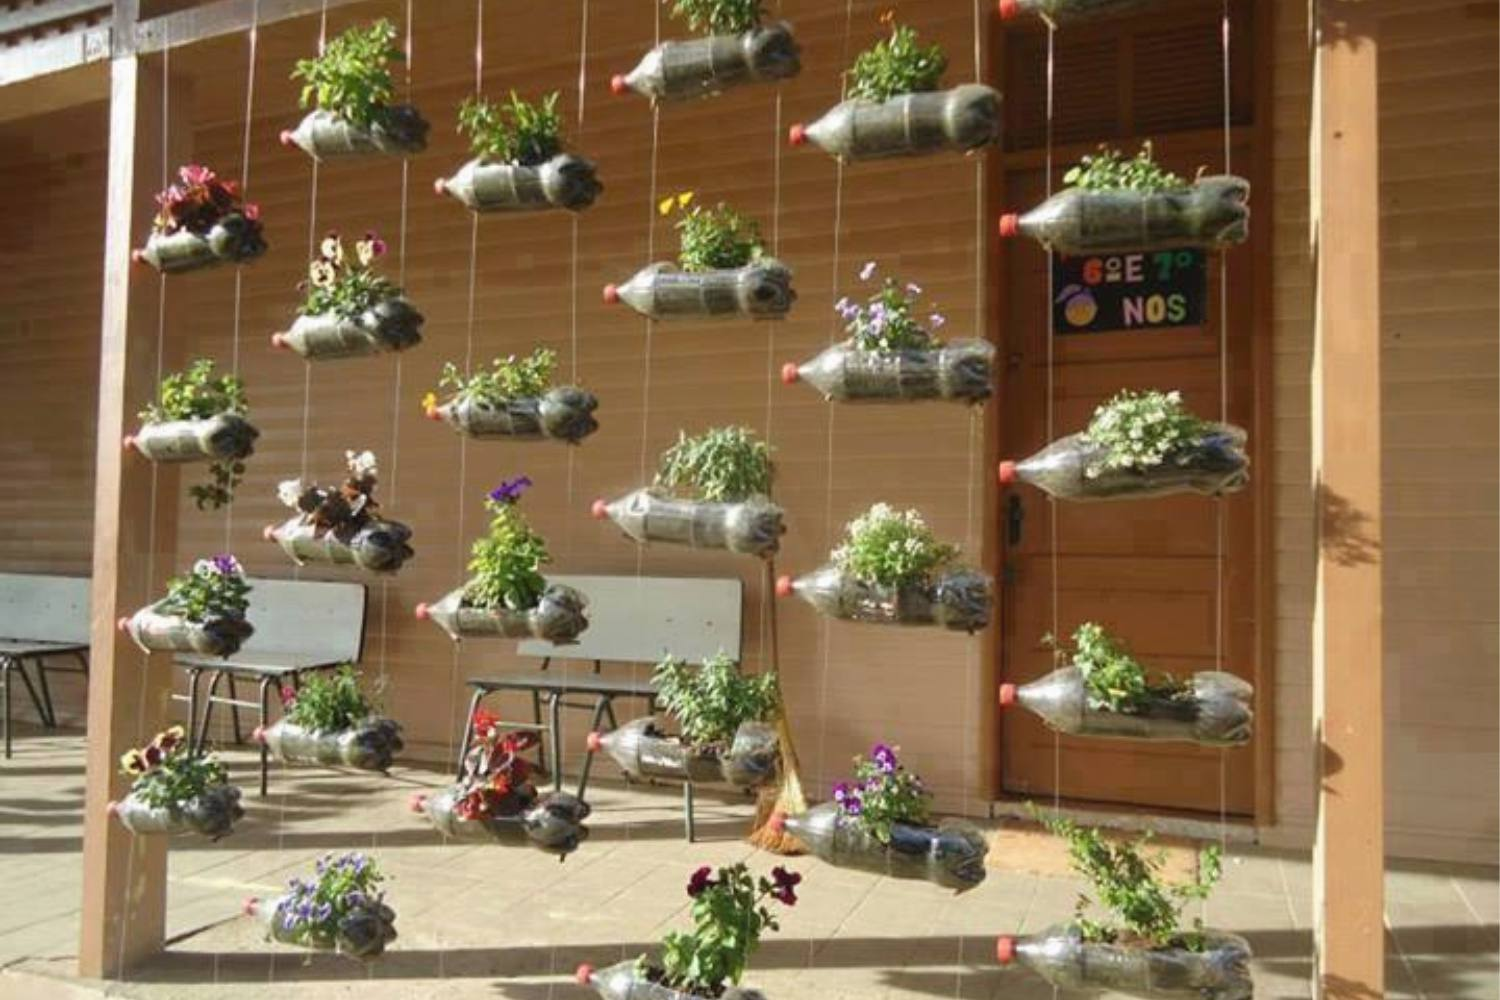 Vertical garden ideas with hanging two-liter bottles filled with plants.